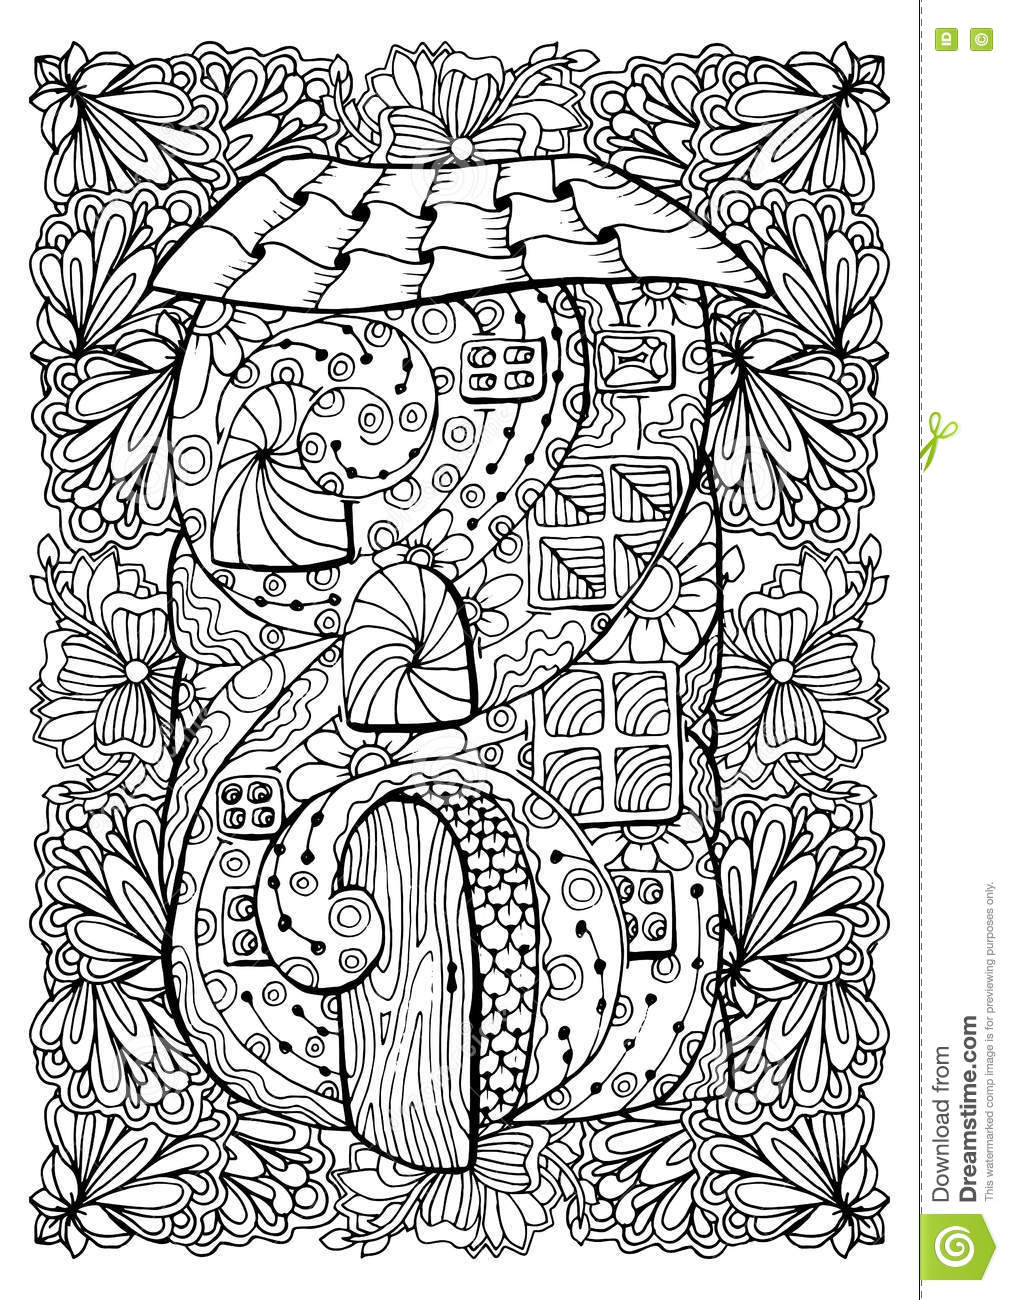 Book Cover Design Drawing : Adult coloring book cover design mono color black ink